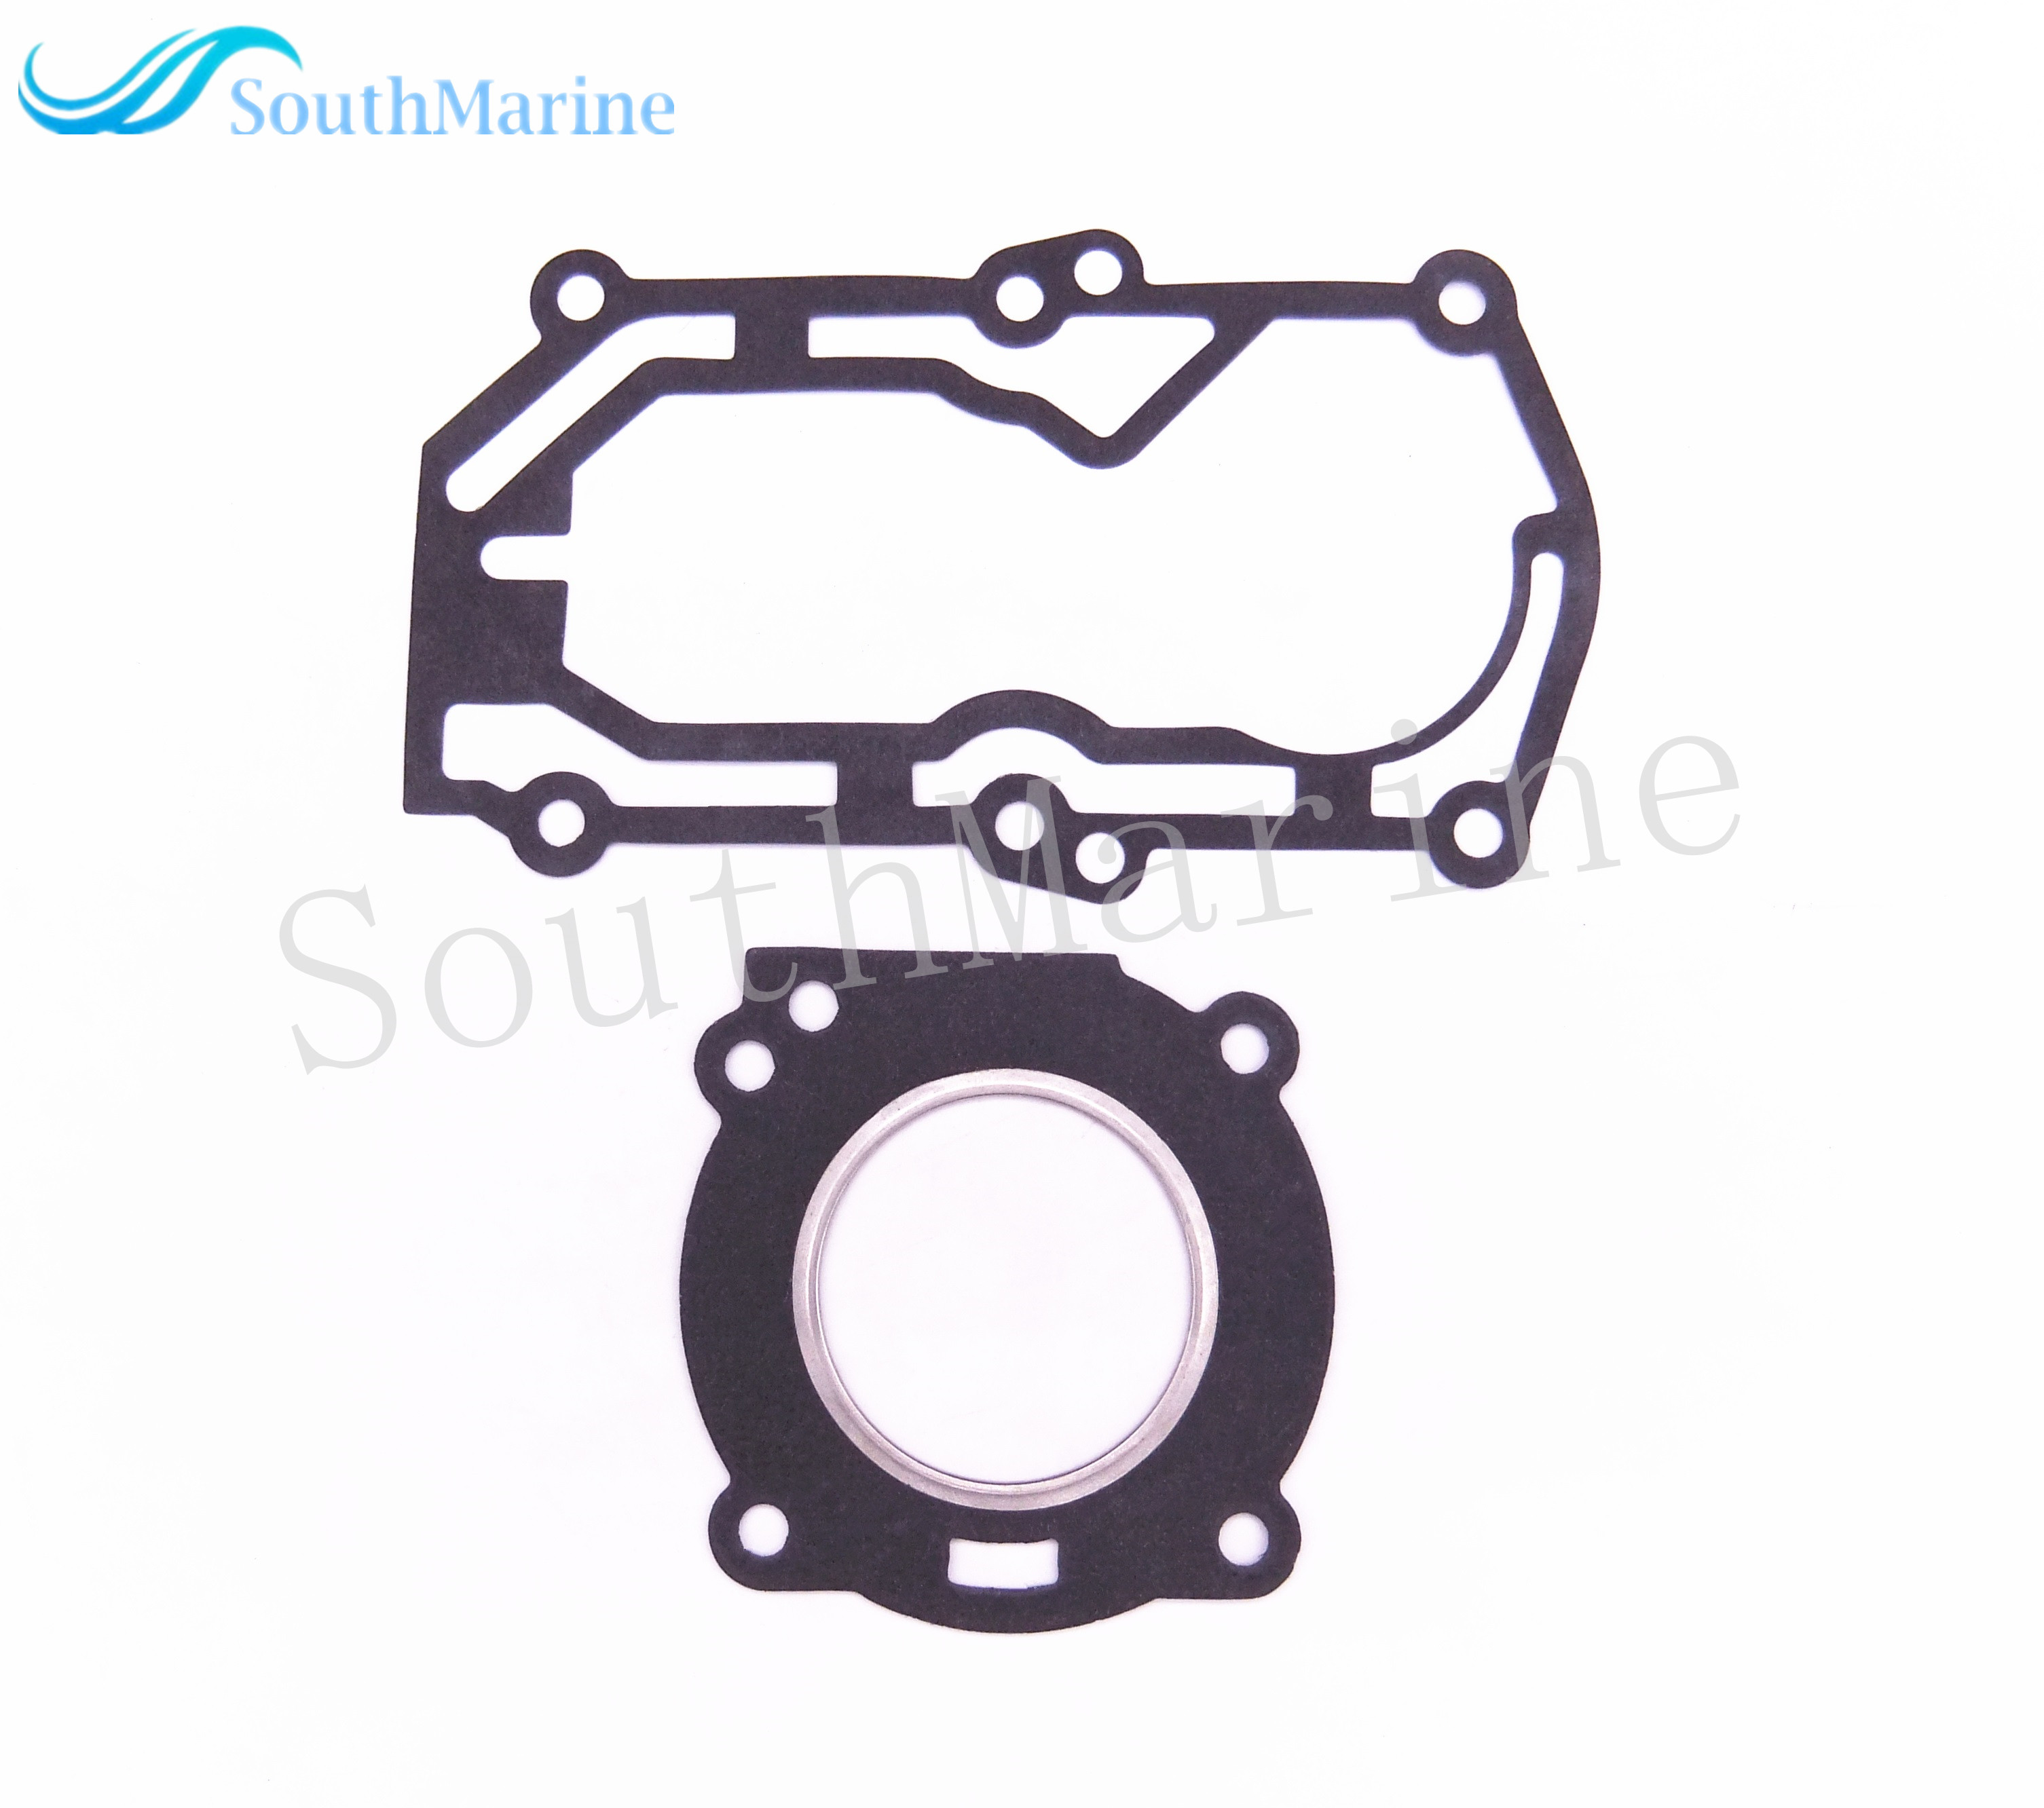 Complete Seal Gaskets Kit For Mercury Marine 2-Stroke 2.2HP 2.5HP 3.3HP Outboard Engine